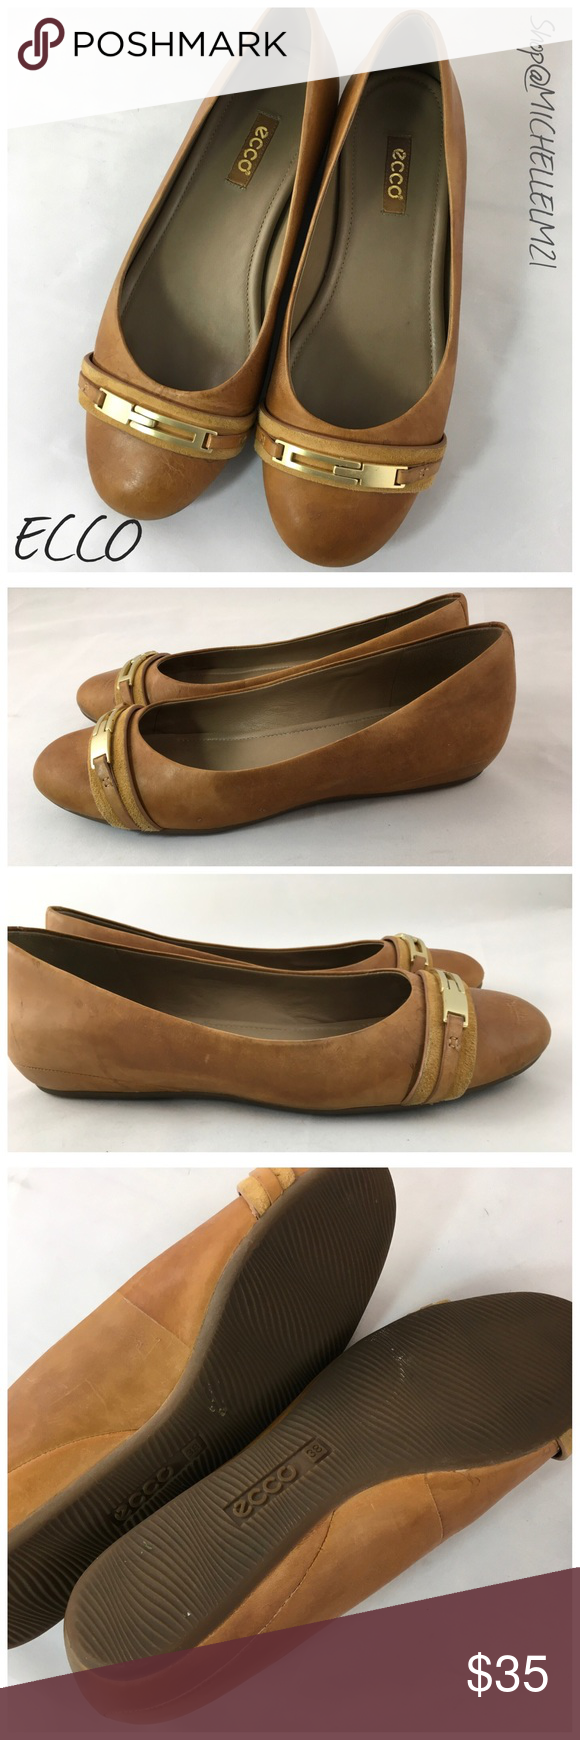 ECCO women's leather flats Ecco leather buckle detail flat. Leather with rubber sole, brushed gold buckle with leather toe detail. Preowned with distressed leather look. Size 8 women's US 38 EUR. #0500. Bundle in my Closet and save. I ship same day or next almost always. No Paypals or Trades. Ecco Shoes Flats & Loafers